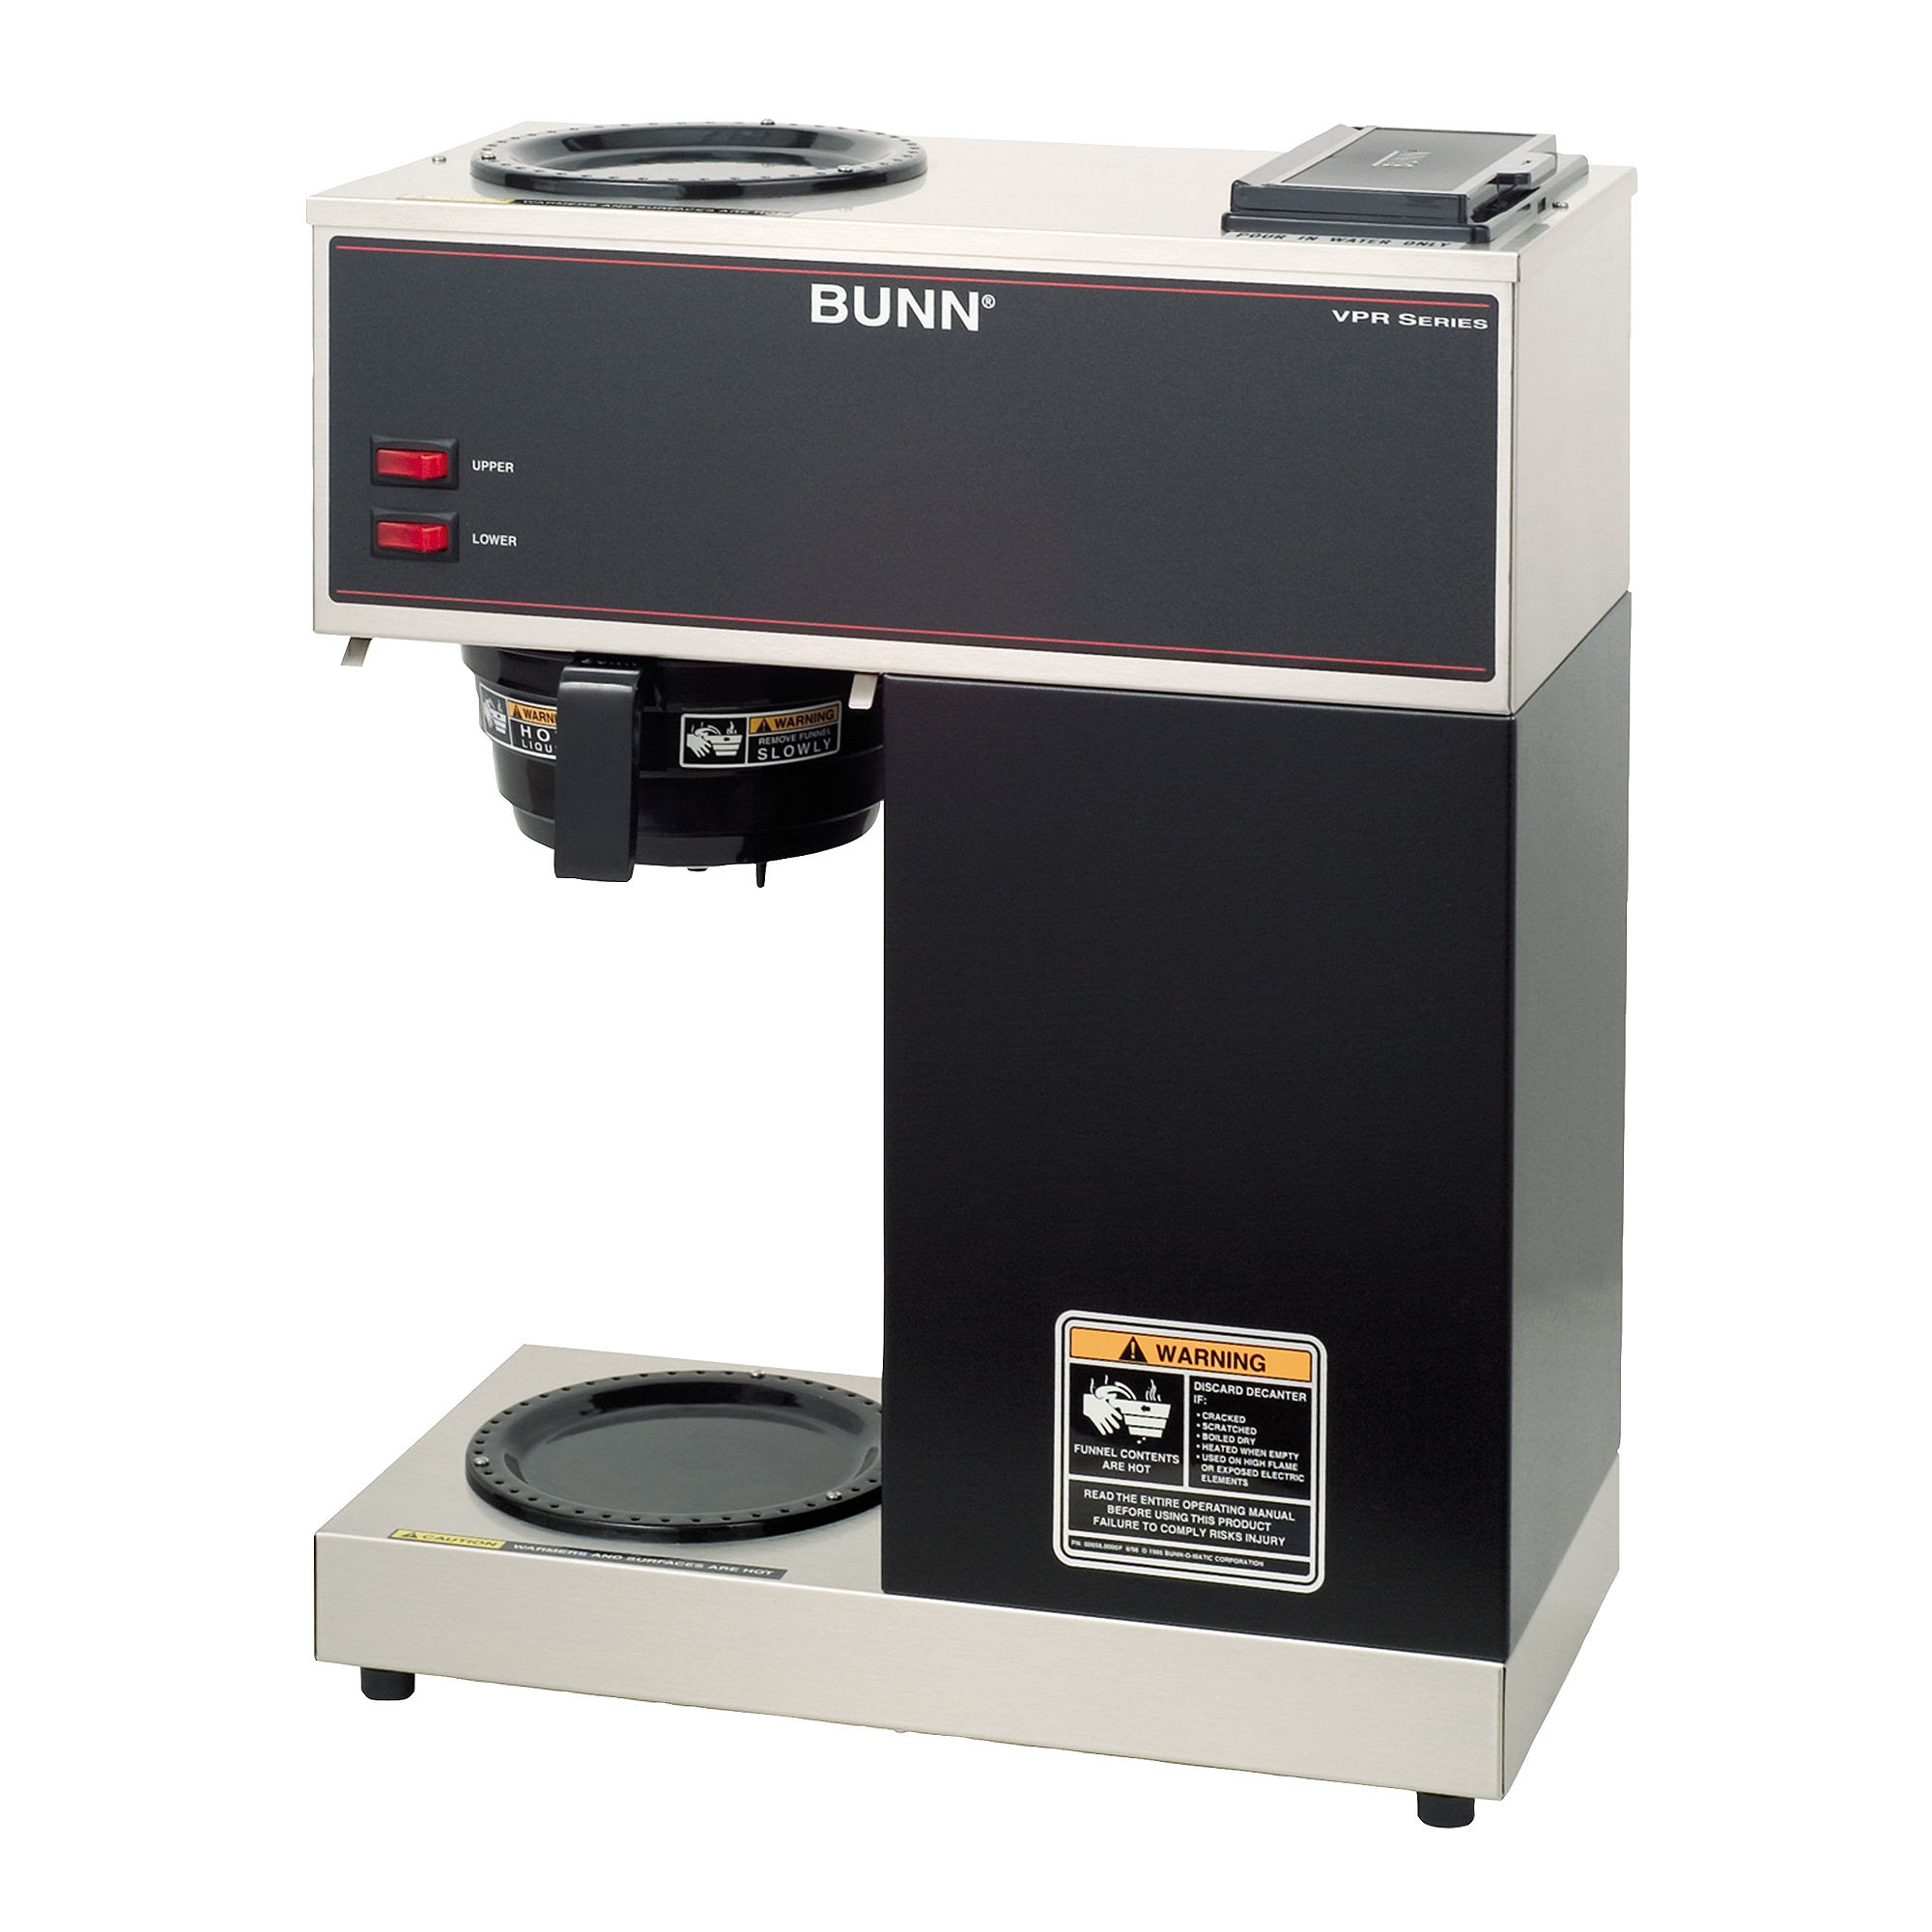 Bunn VPR Commercial 12-Cup Pourover Coffee Maker